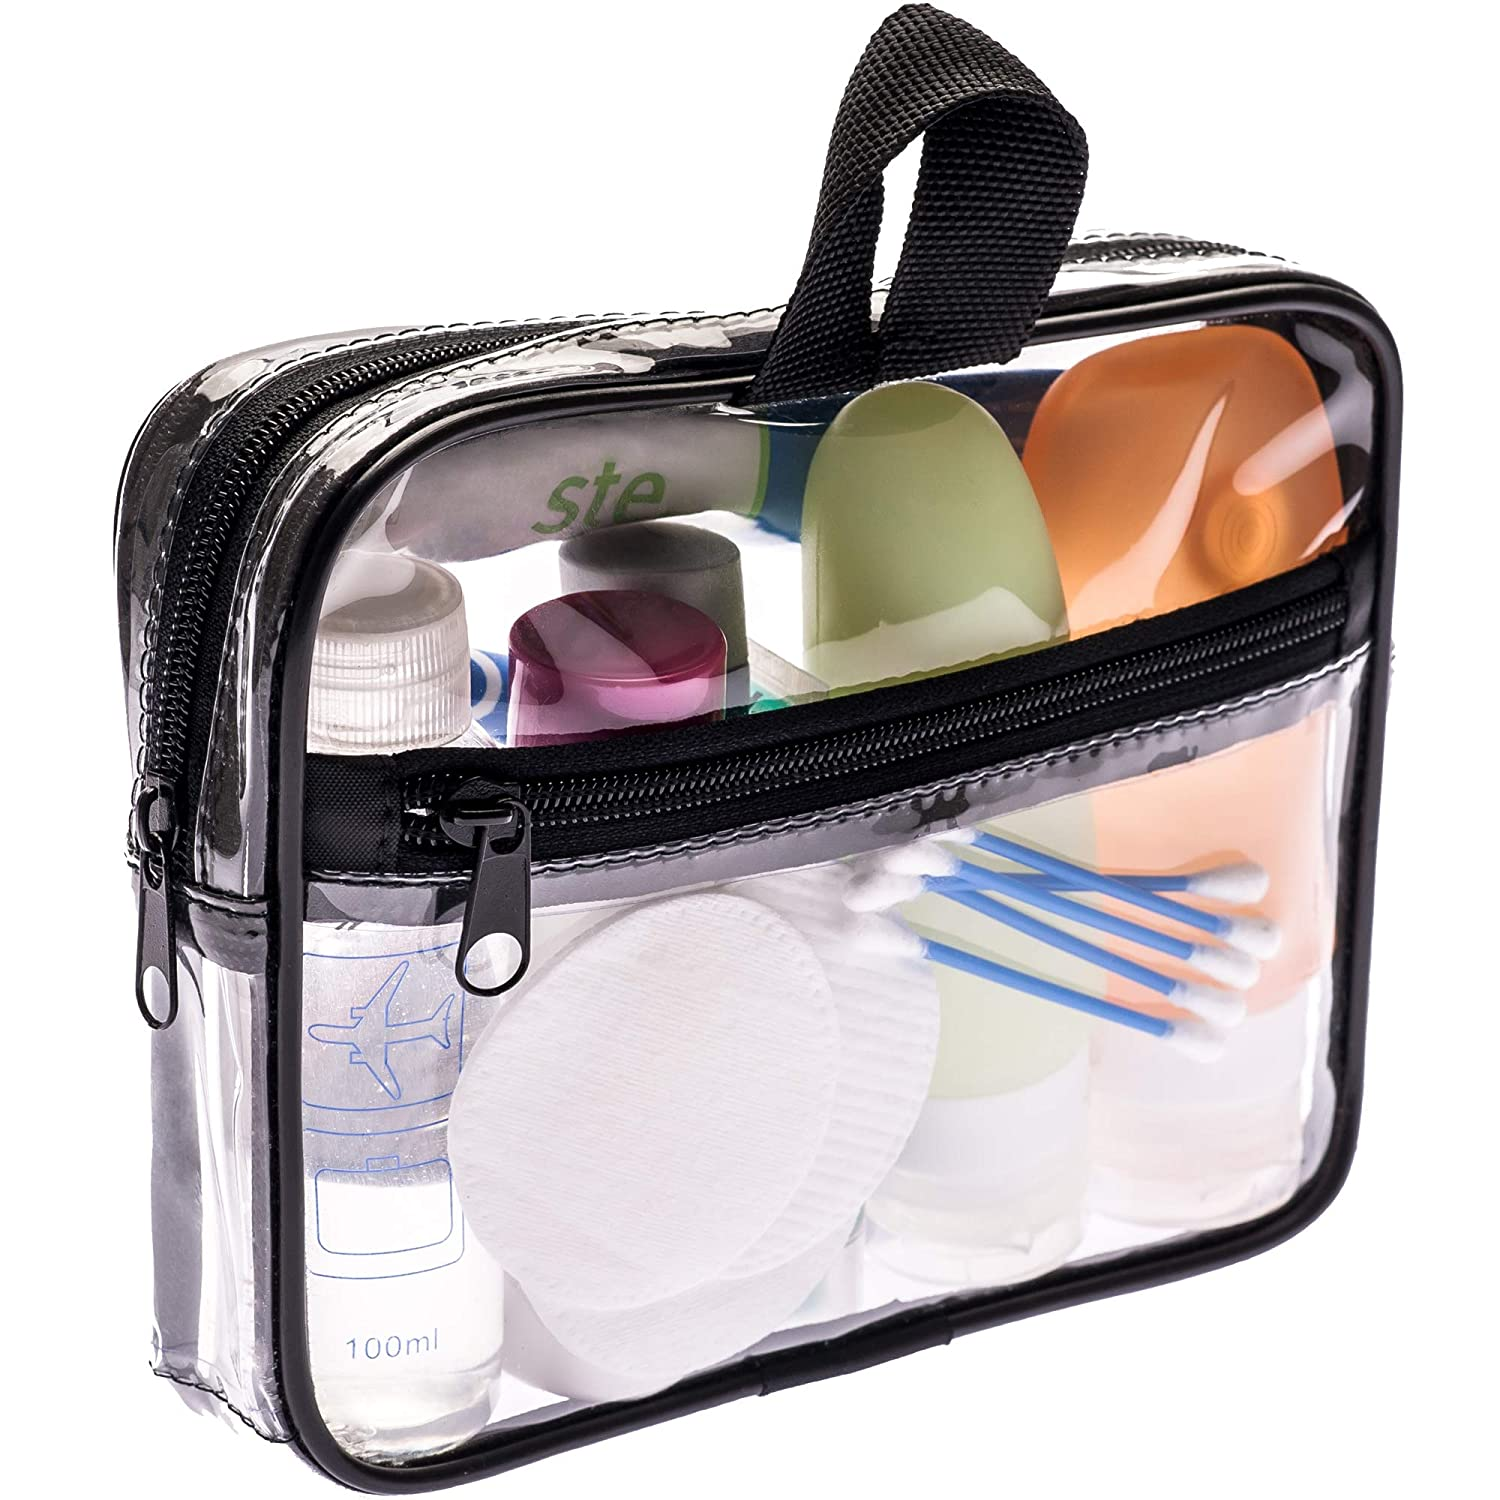 TSA Approved Toiletry Bag 3-1-1 Clear Travel Cosmetic Bag with Handle - Quart Size Bag with Zipper - Carry-on Luggage Clear Toiletry Bag for Liquids - Airport Airline TSA Compliant Bag for Man Women